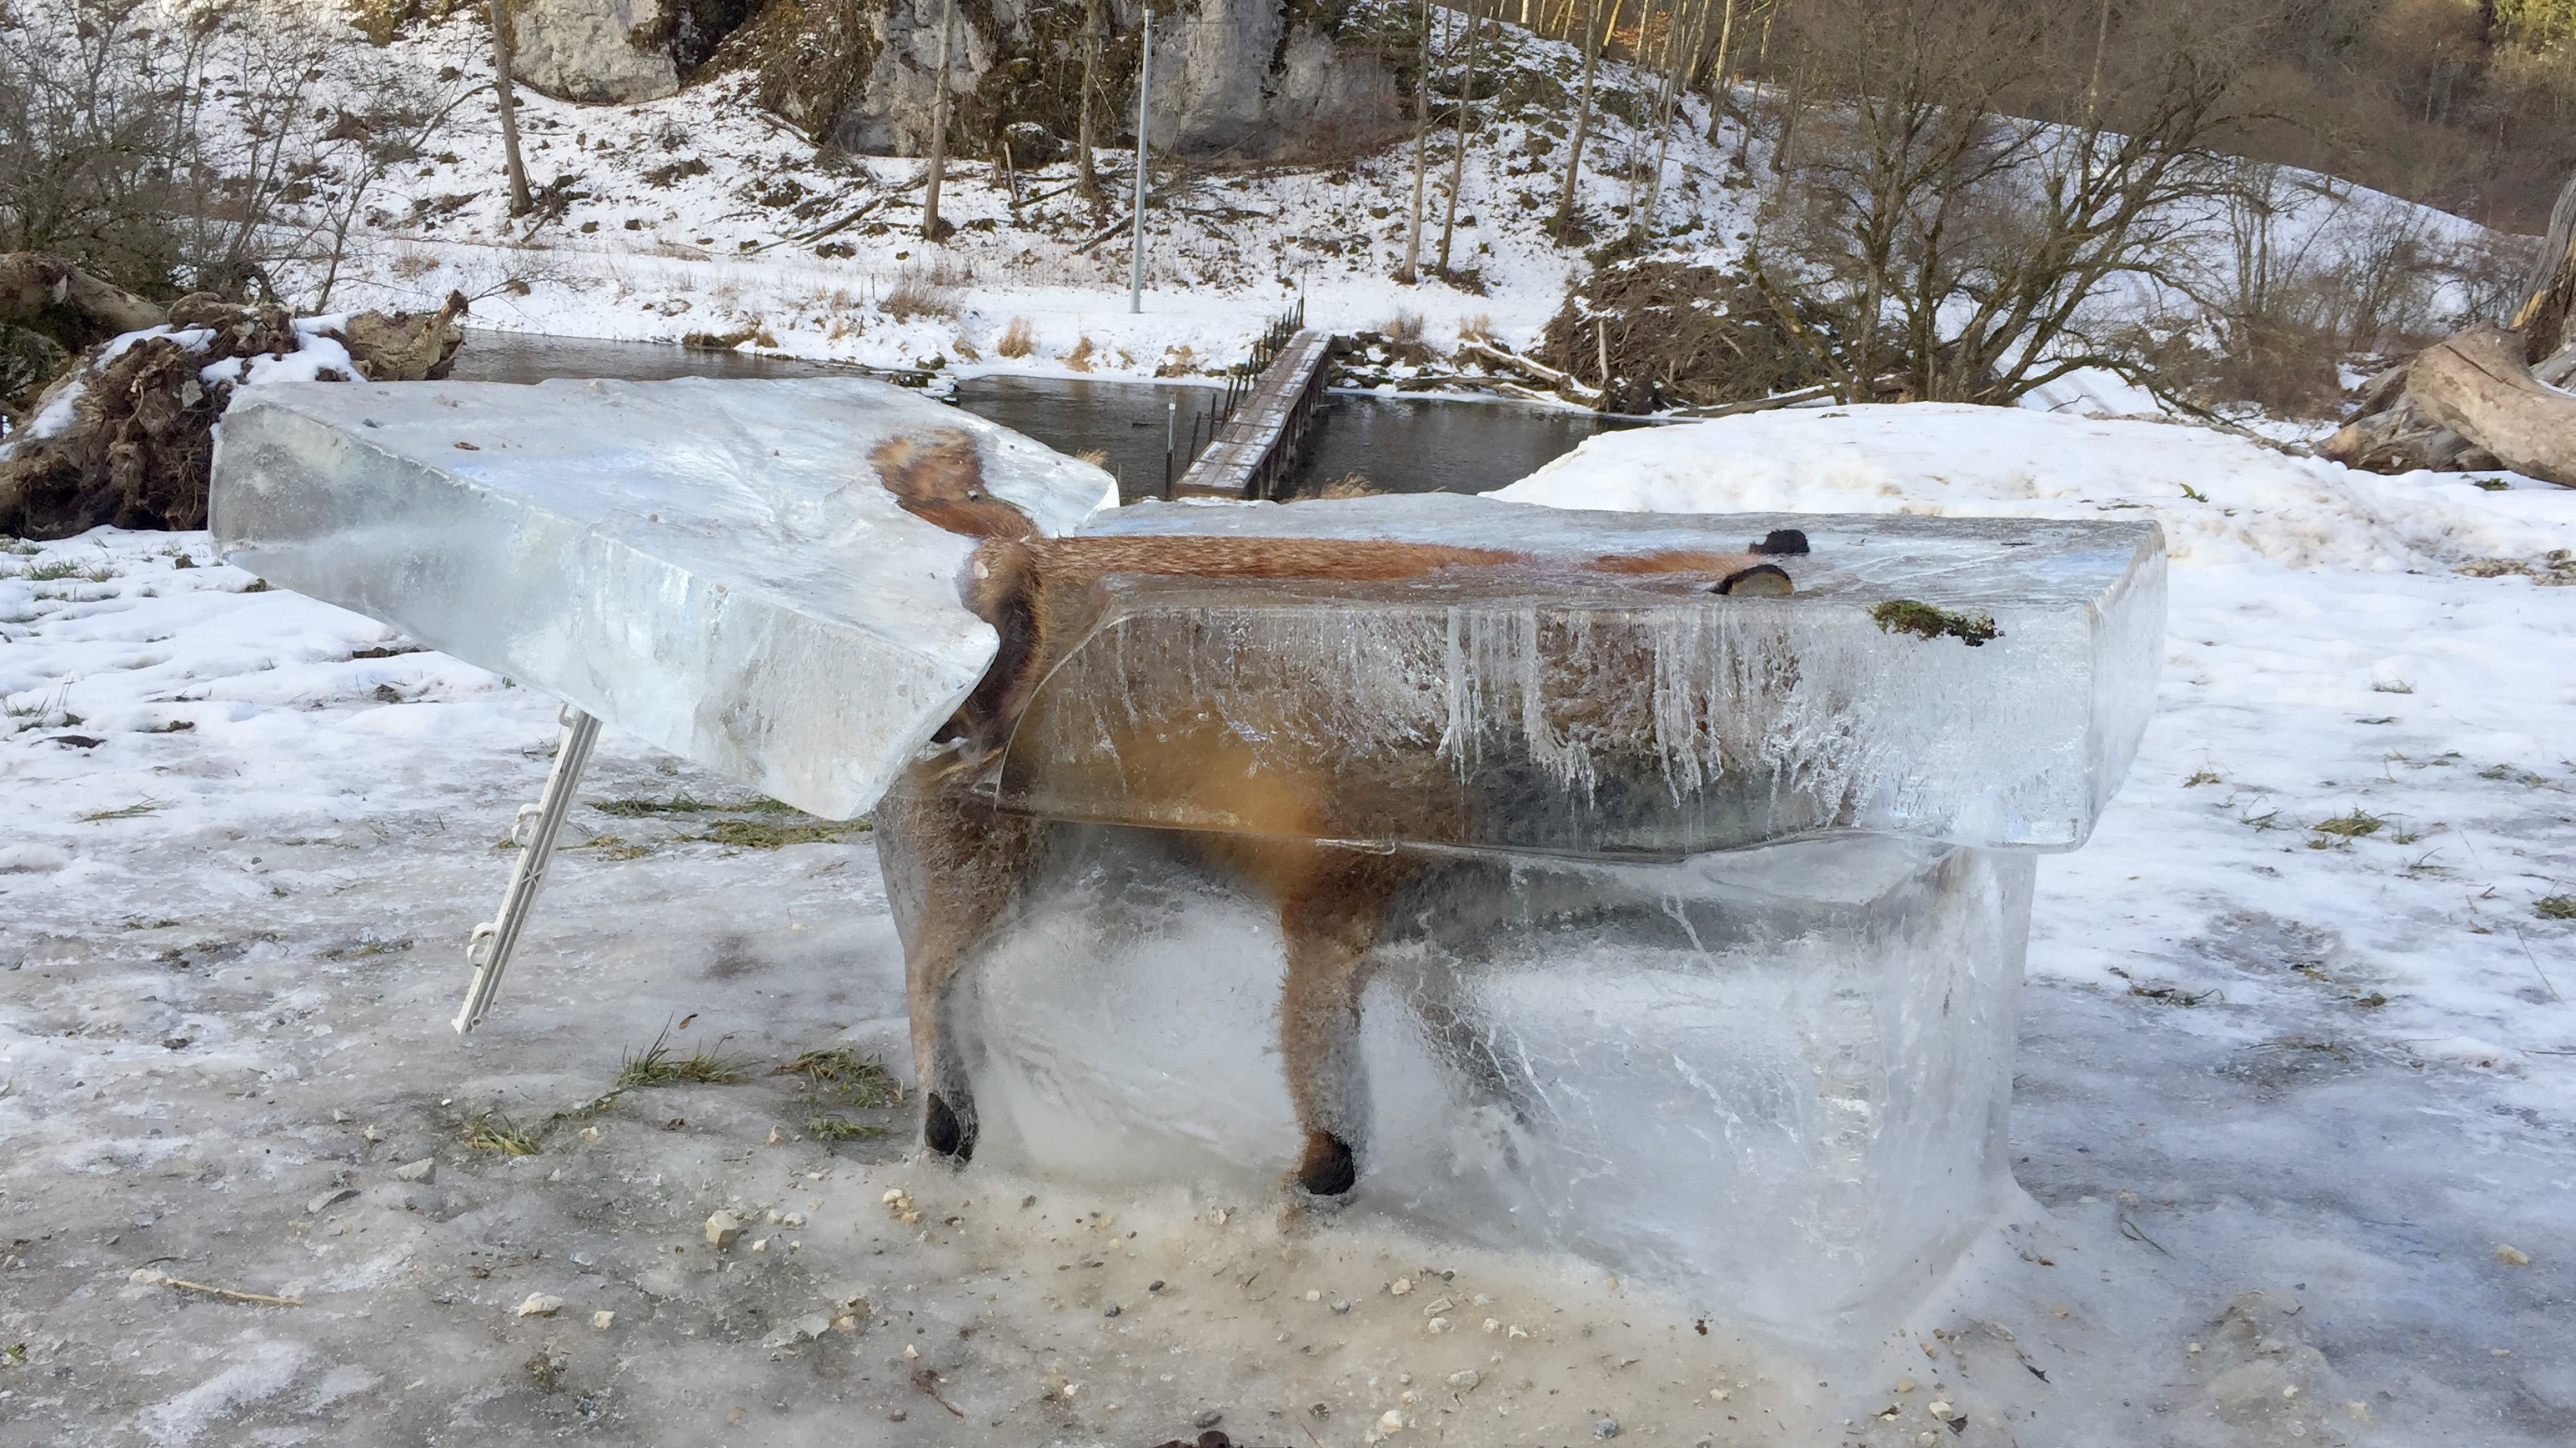 A block of ice with a frozen fox can be seen in Fridingen, Germany, 13 January 2017. The animal broke through the thin ice on the Donau river and drowned. Photo: Johannes Stehle/dpa